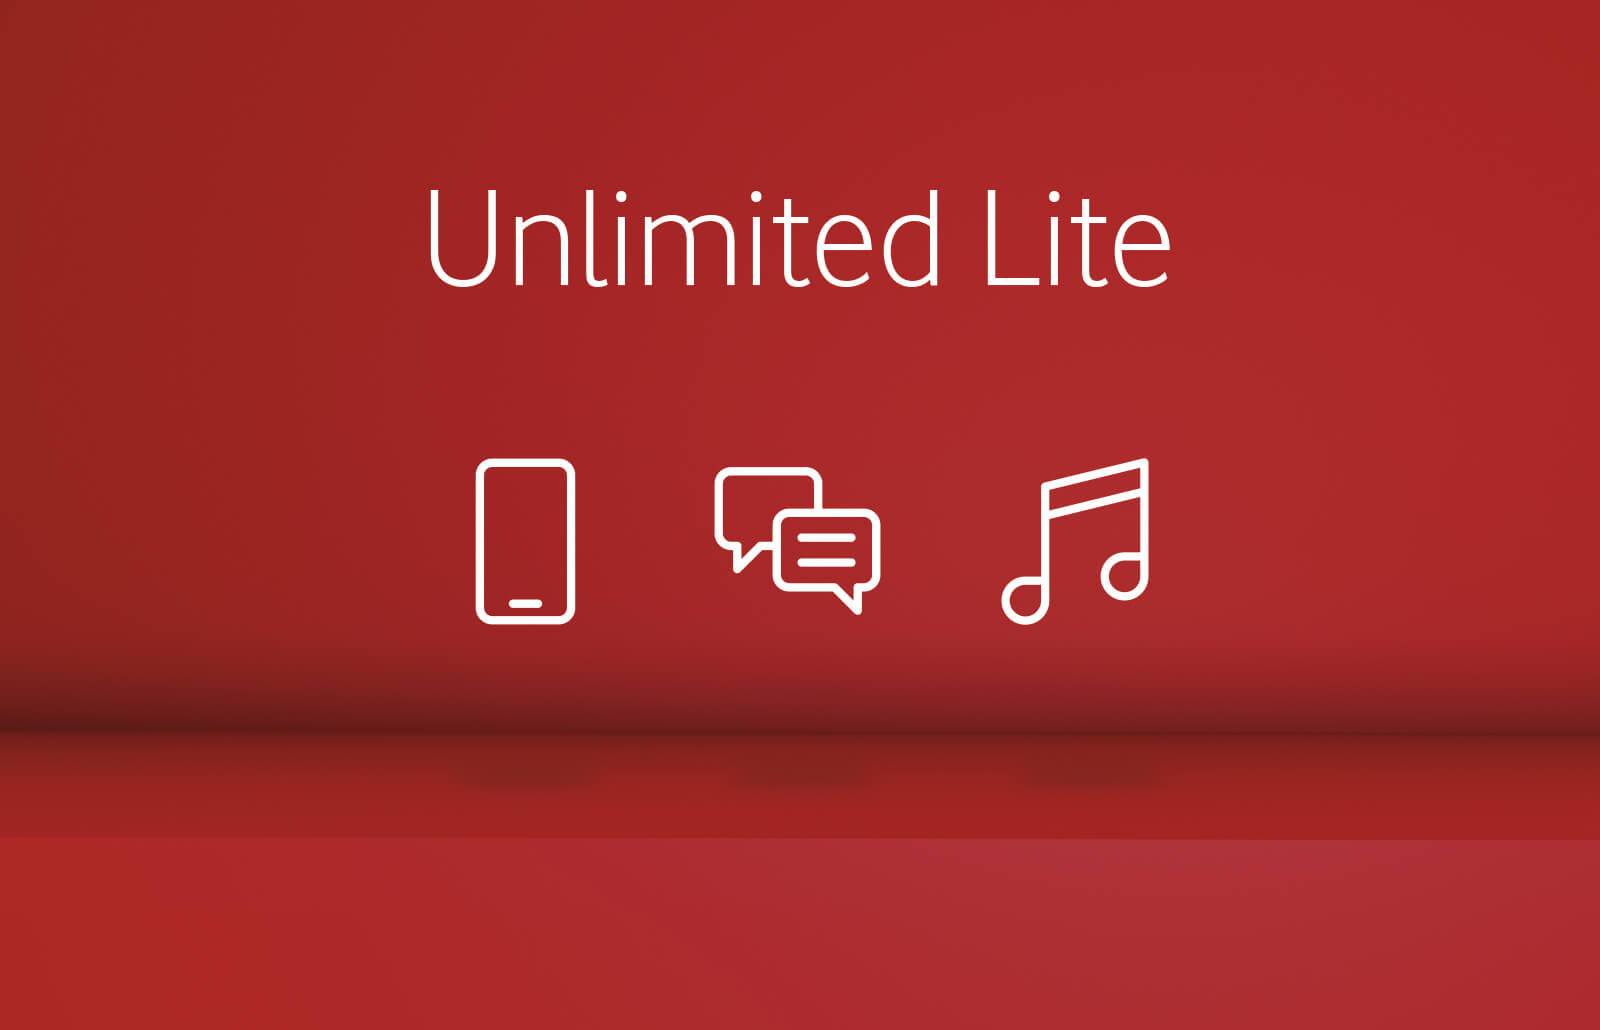 Unlimited lite plan icons